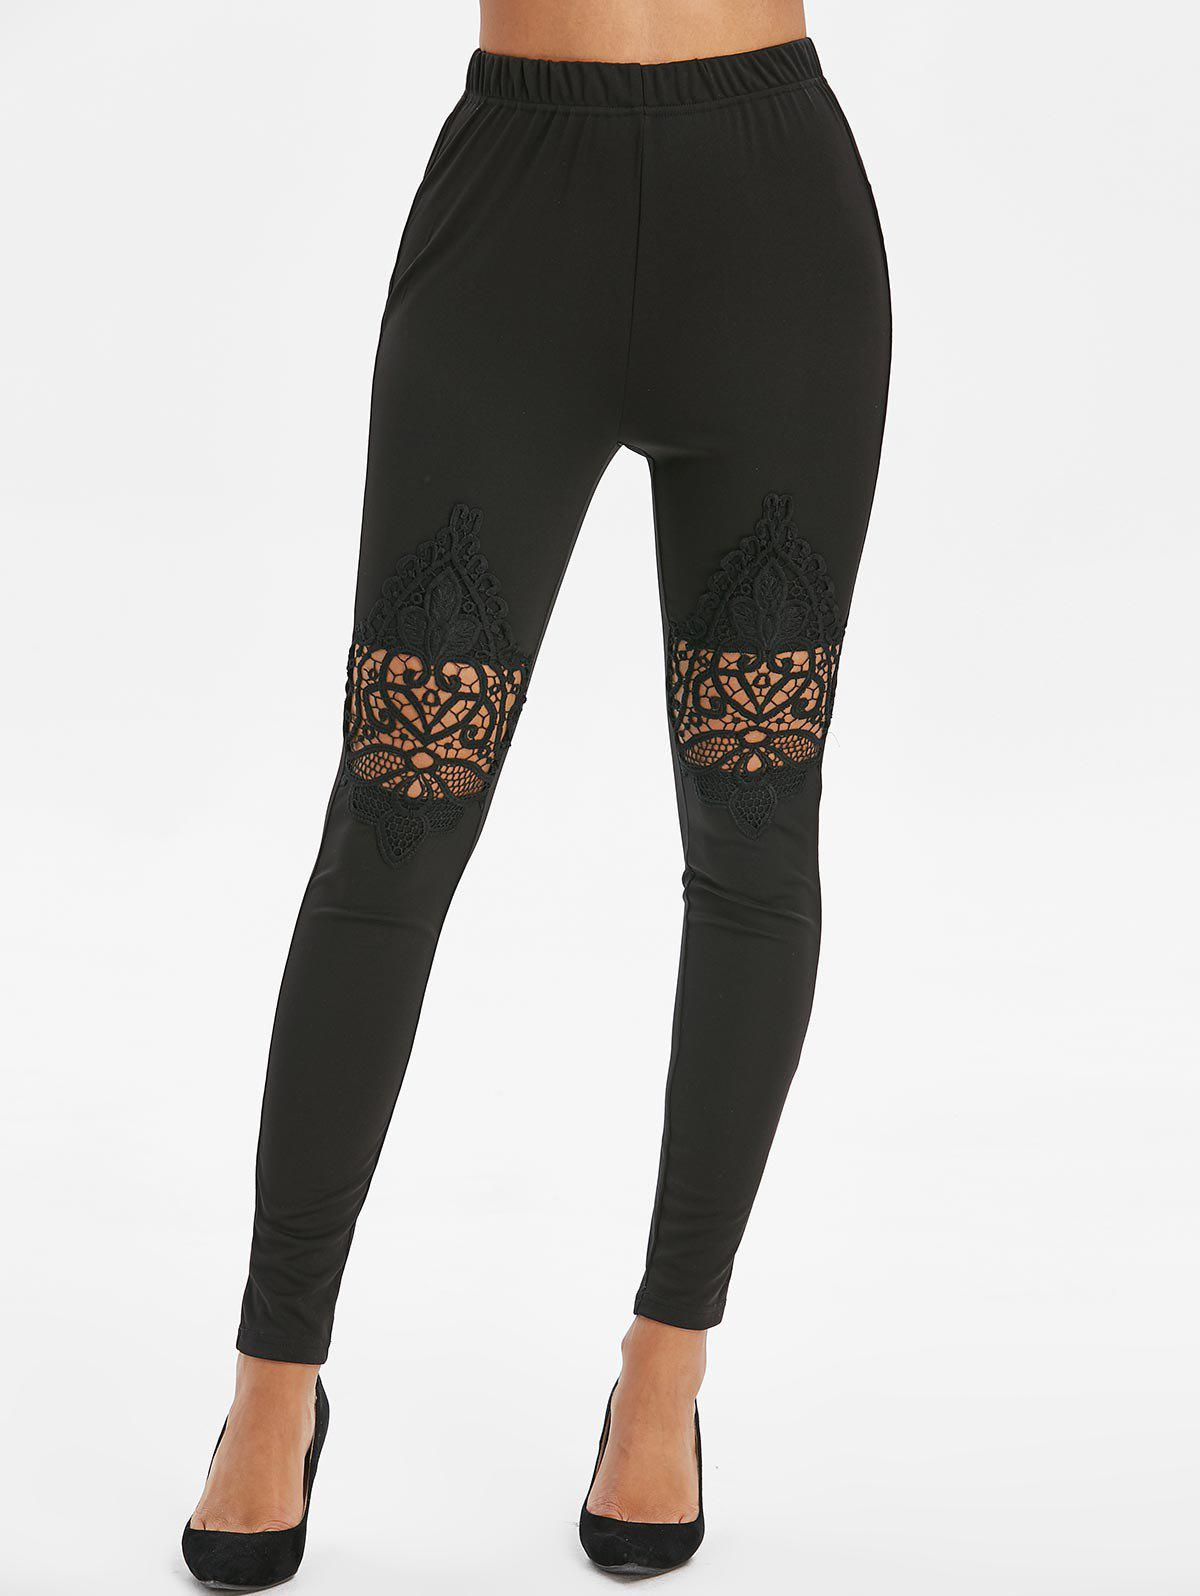 Fashion High Waist Lace Spliced Leggings